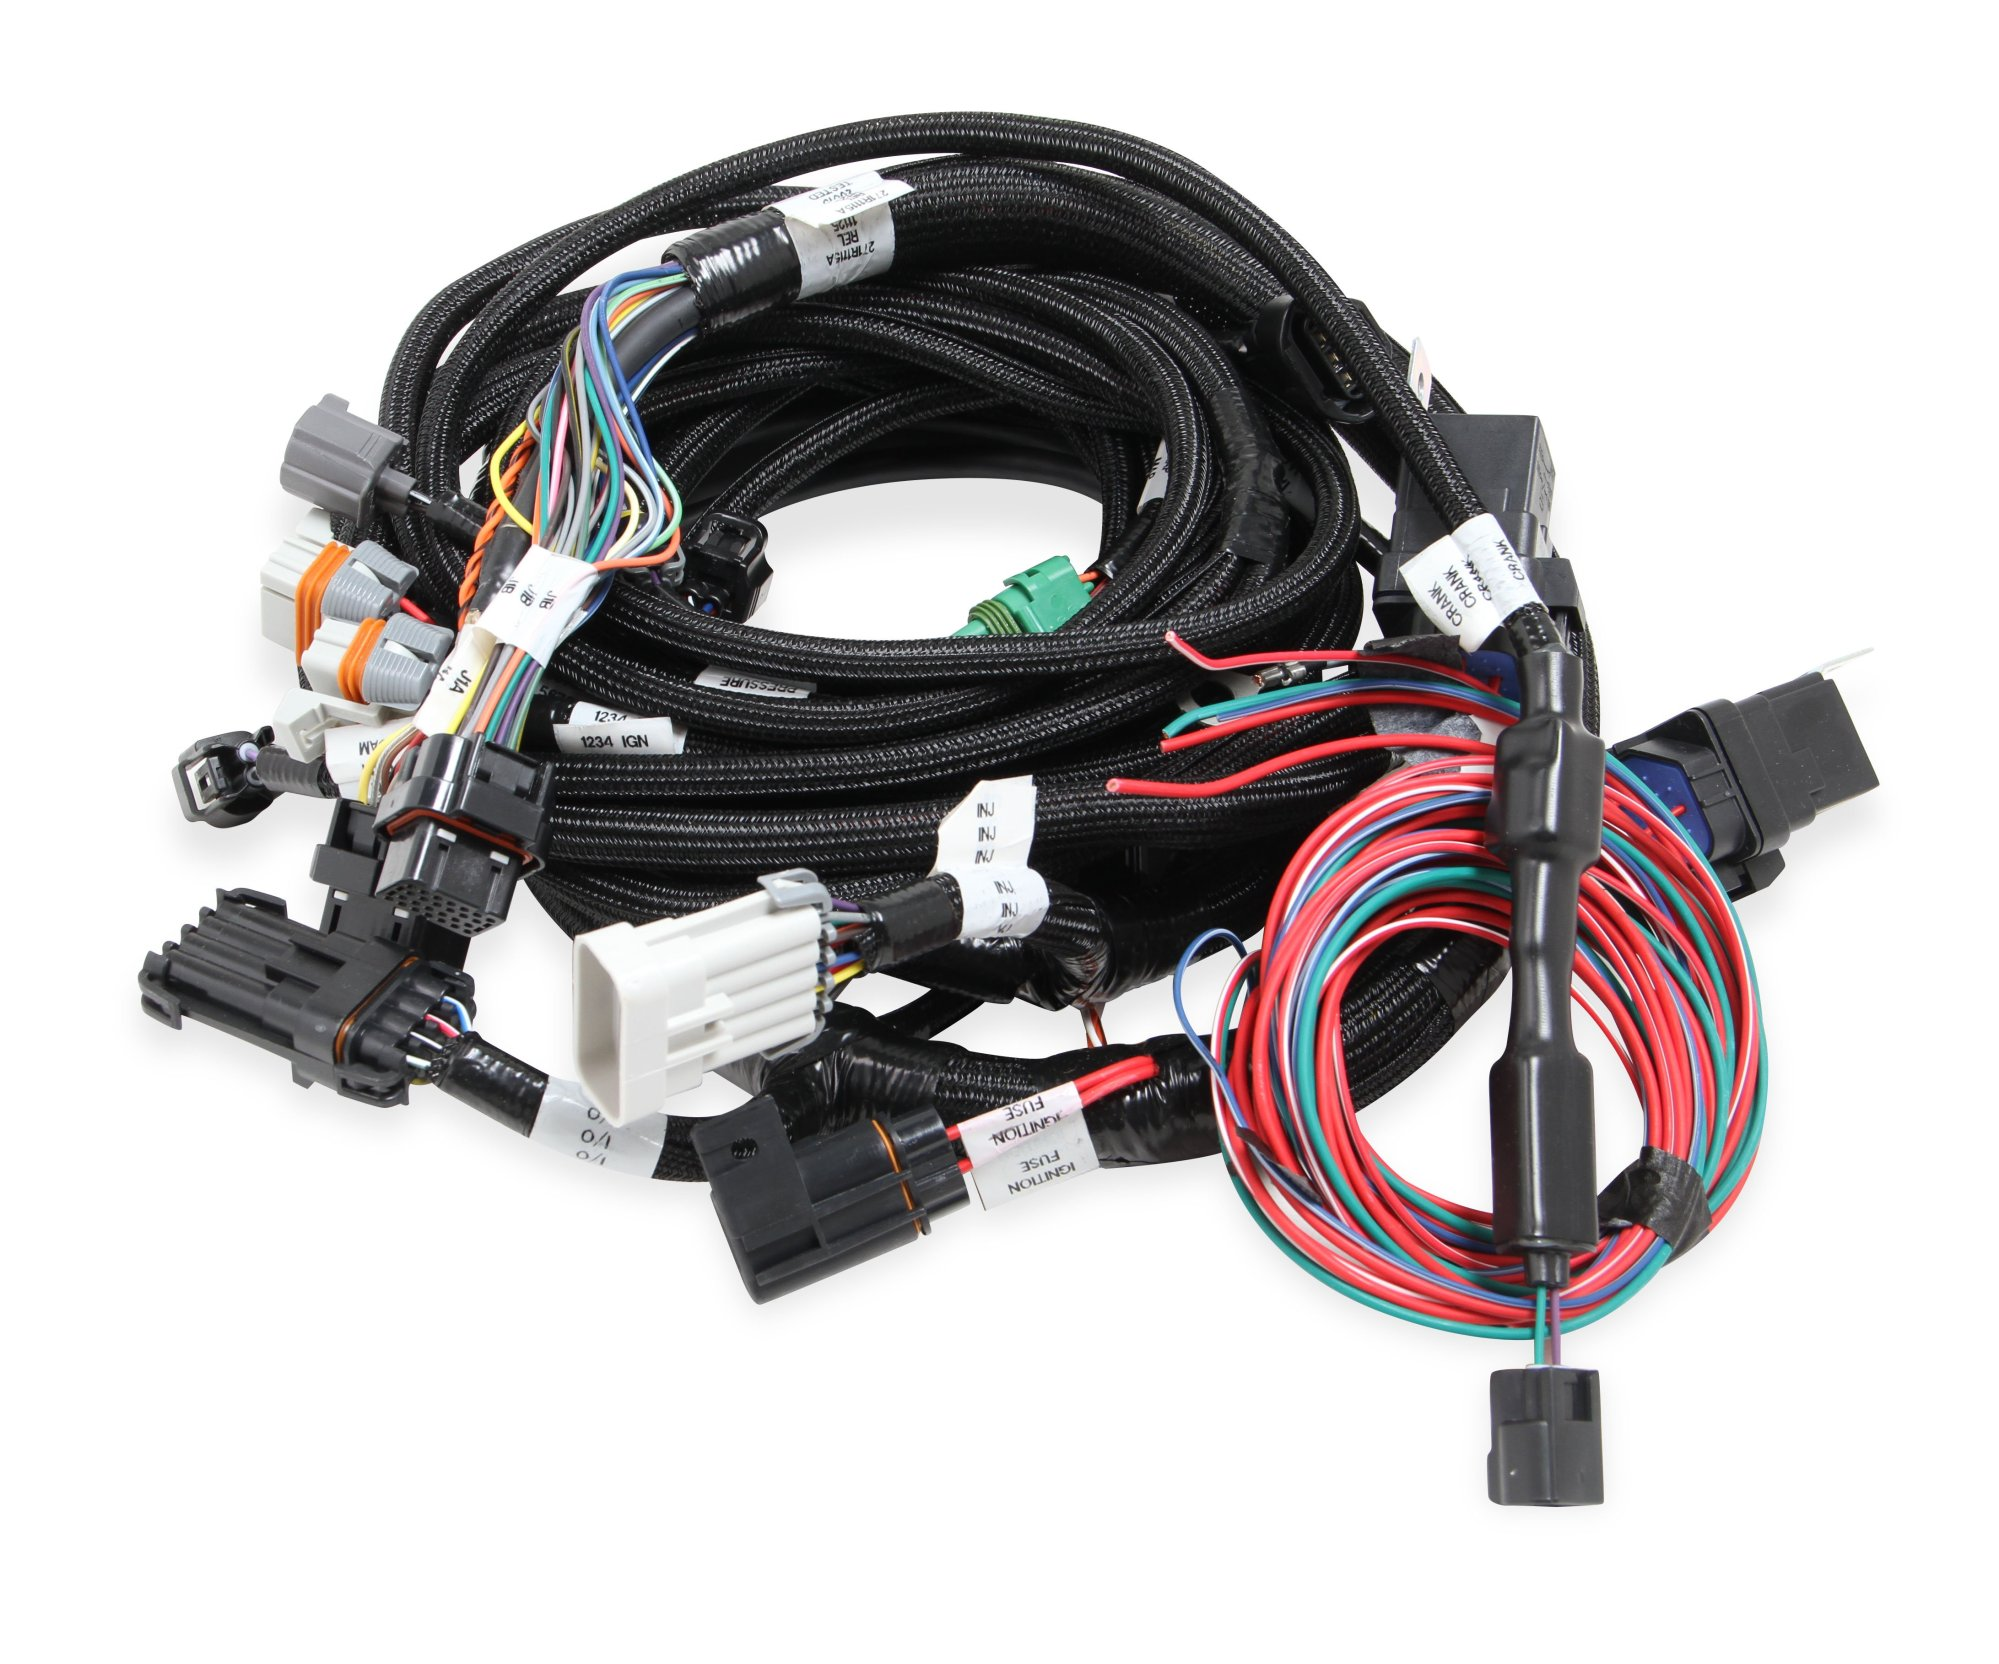 hight resolution of 558 113 ford modular 2v 4v main harness for use with holley smart